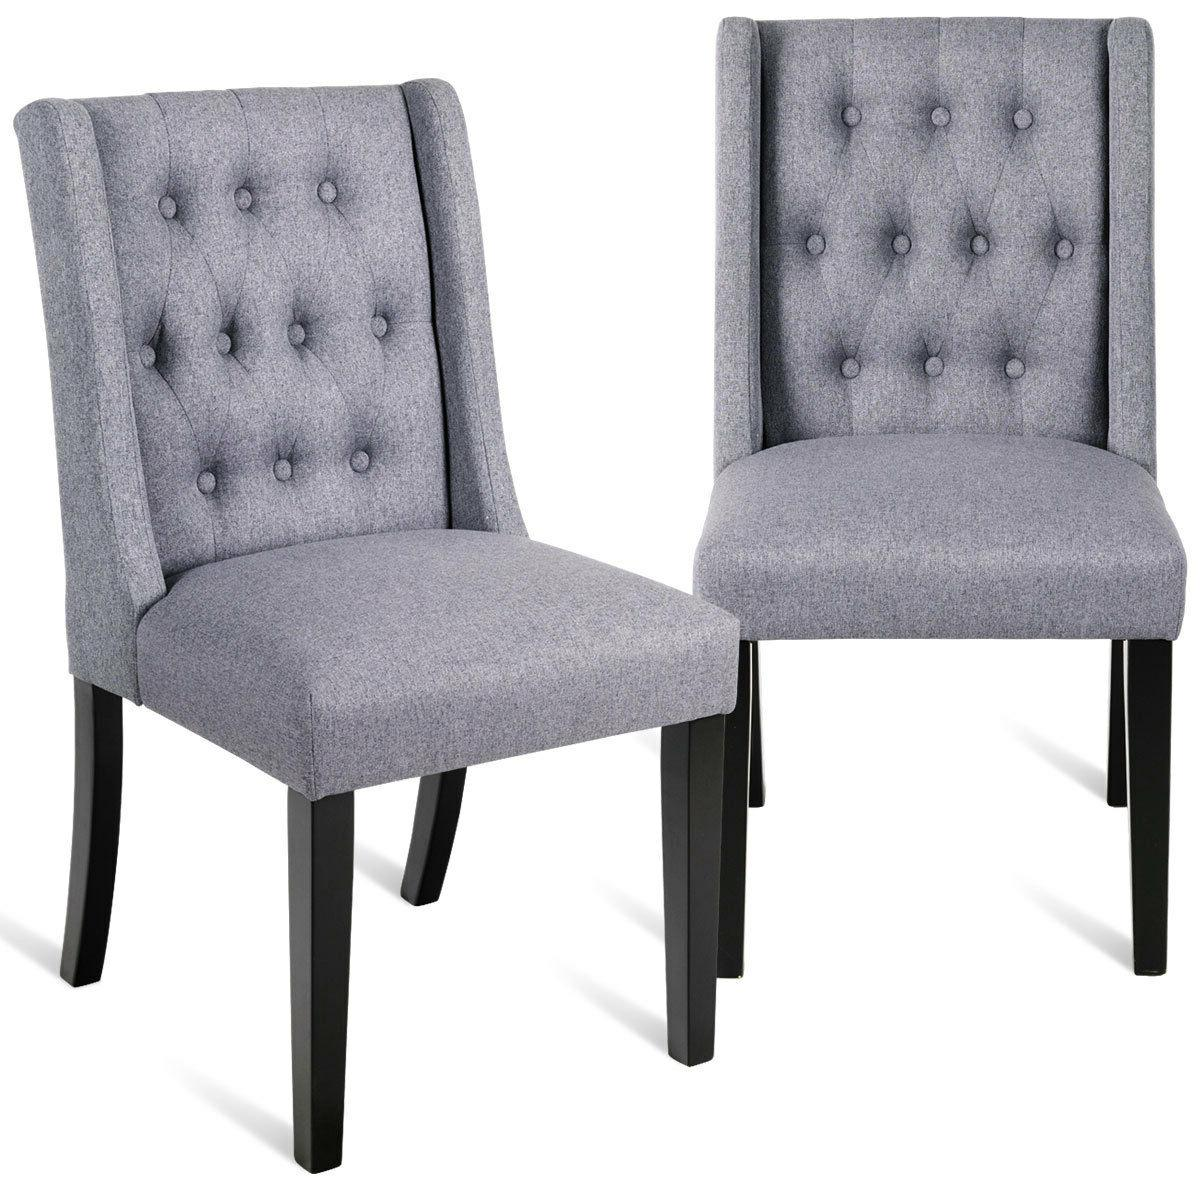 Set of 2 Dining Side Chairs Wing Back Button Tufted Fabric w